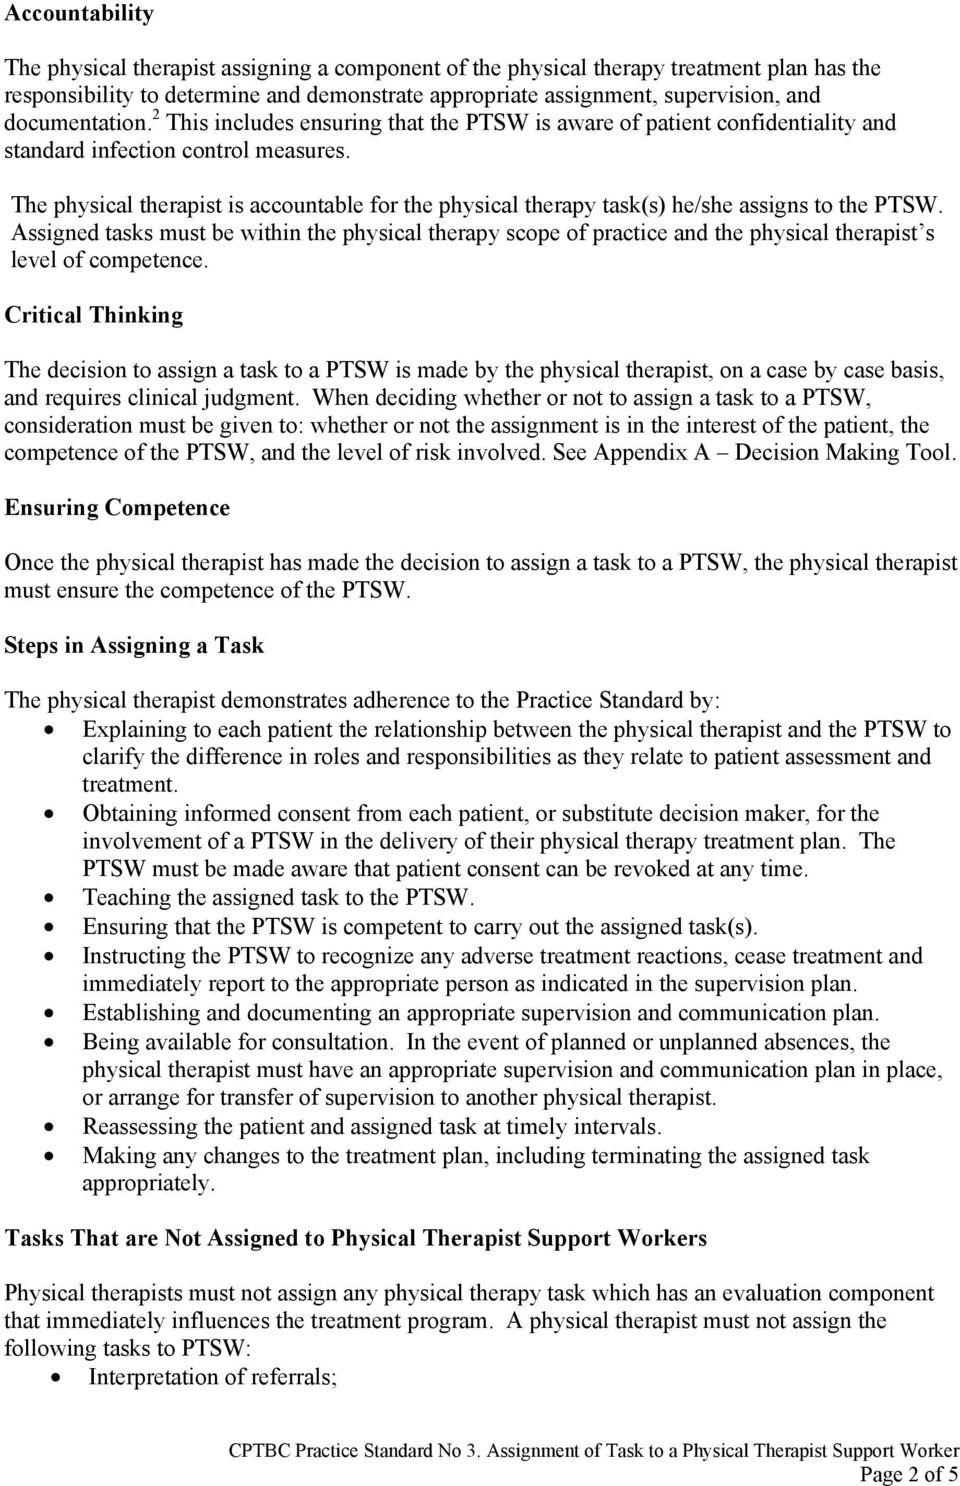 The physical therapist is accountable for the physical therapy task(s) he/she assigns to the PTSW.